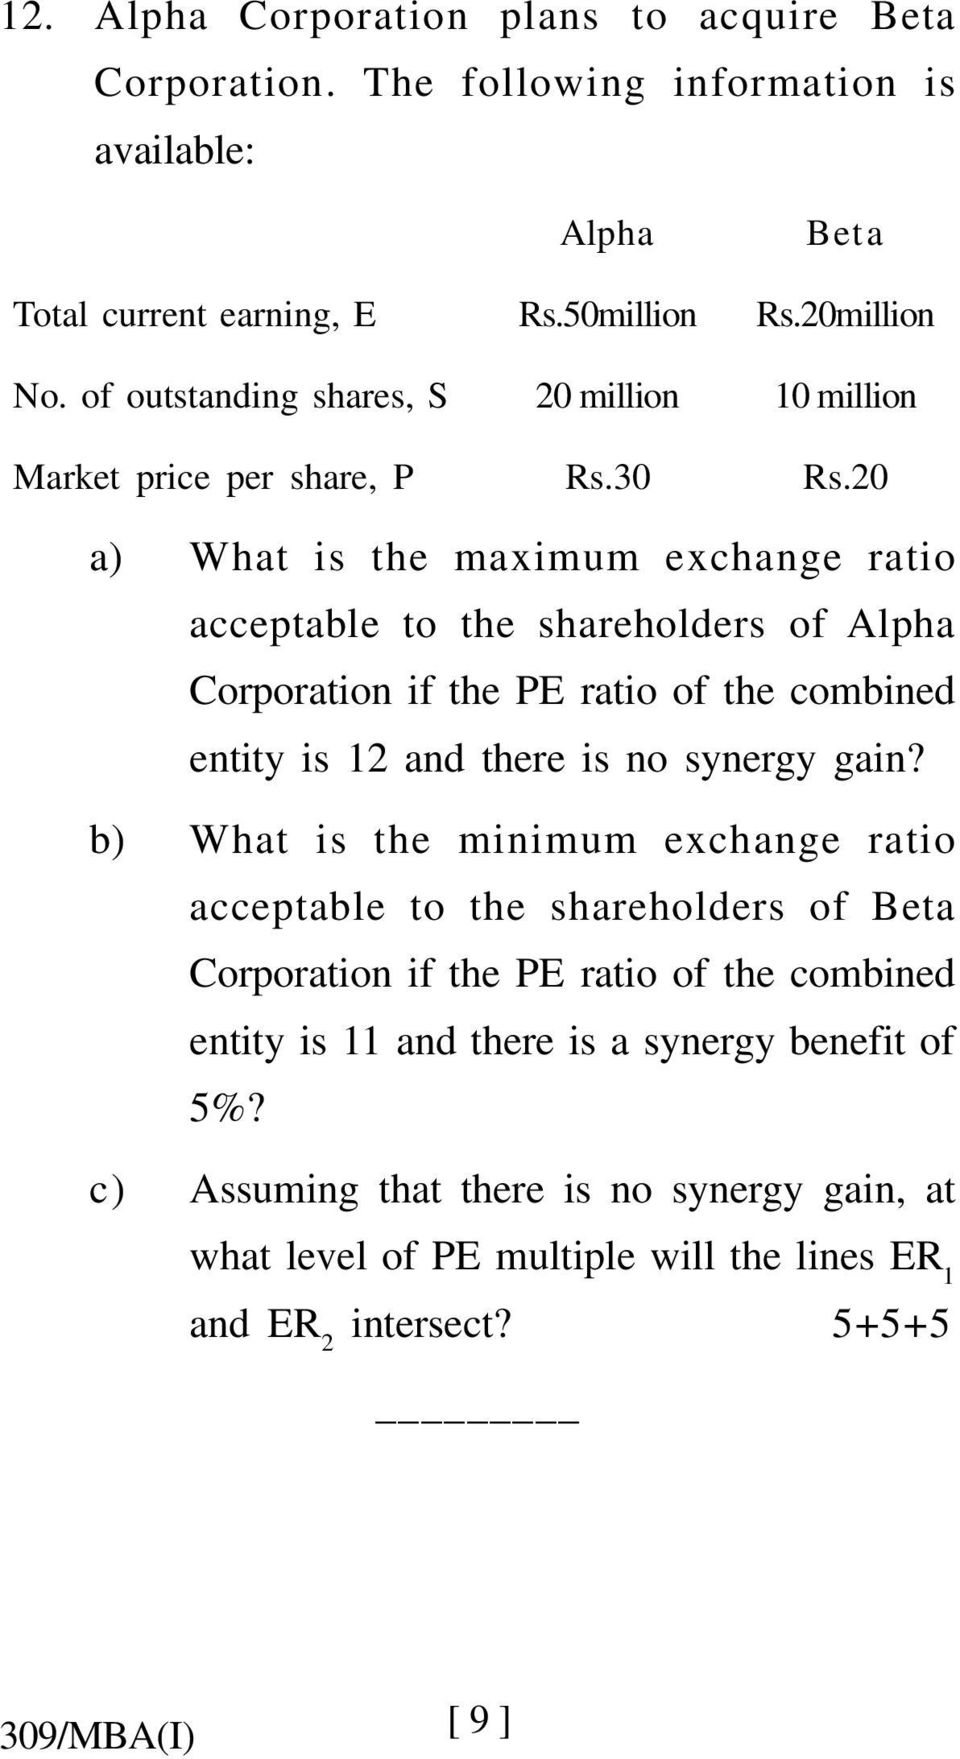 20 a) What is the maximum exchange ratio acceptable to the shareholders of Alpha Corporation if the PE ratio of the combined entity is 12 and there is no synergy gain?